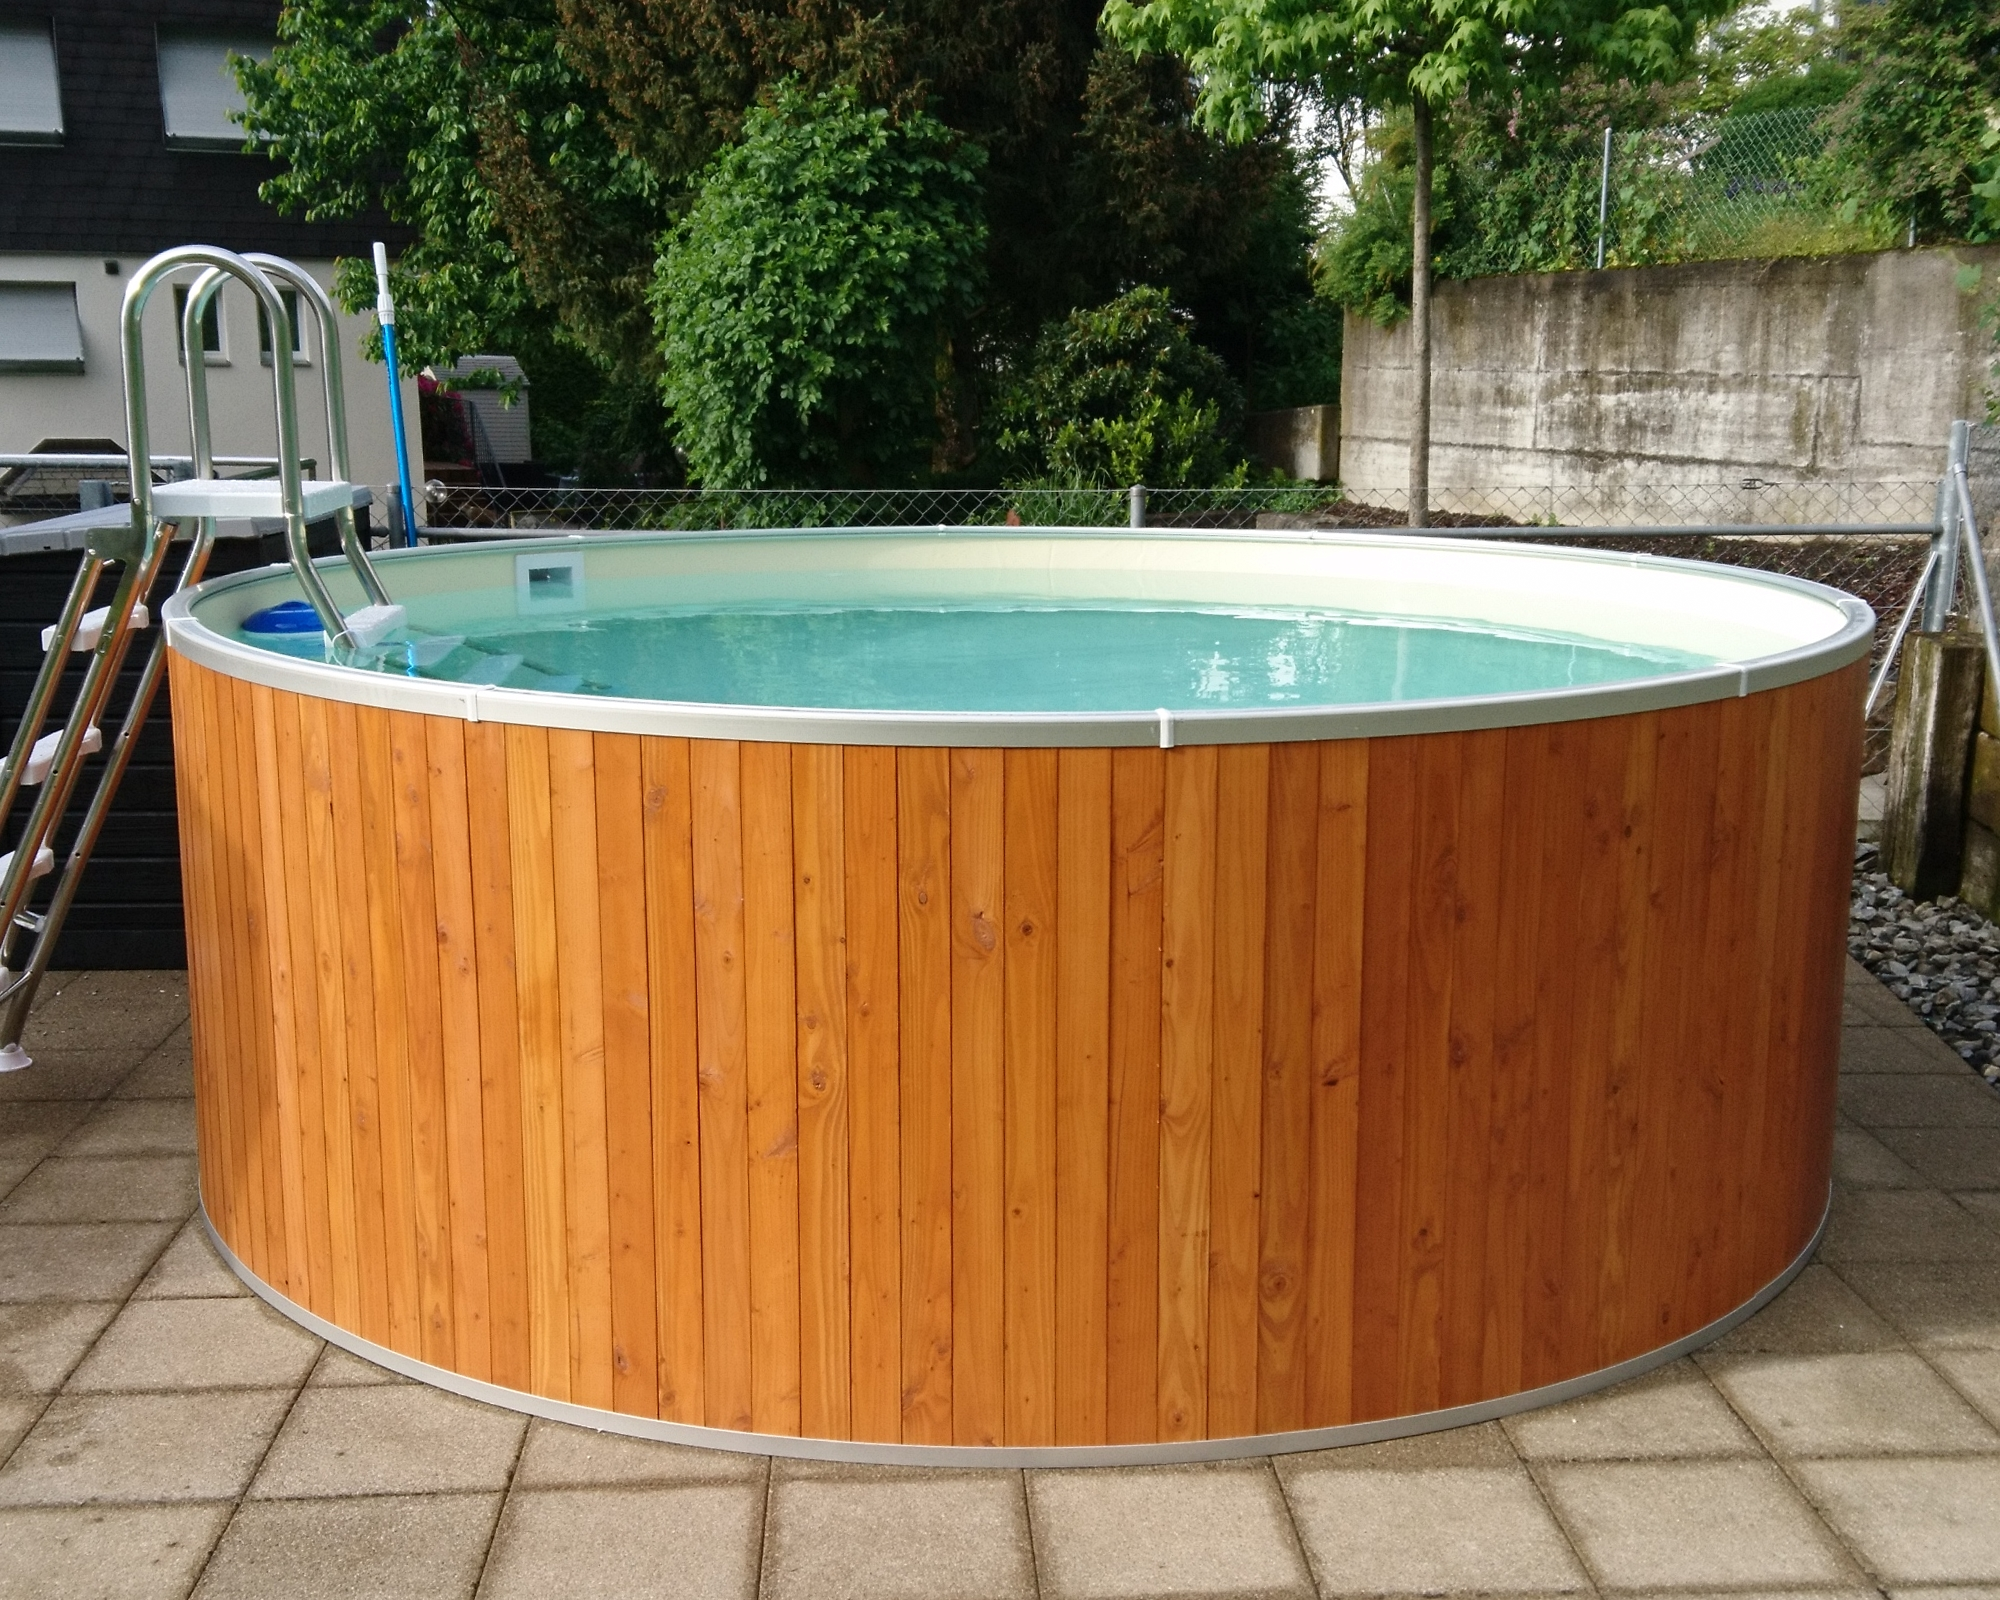 Future Pool Abdeckung Protect Holzpool Fun Wood Ø 4 00m Höhe 120cm